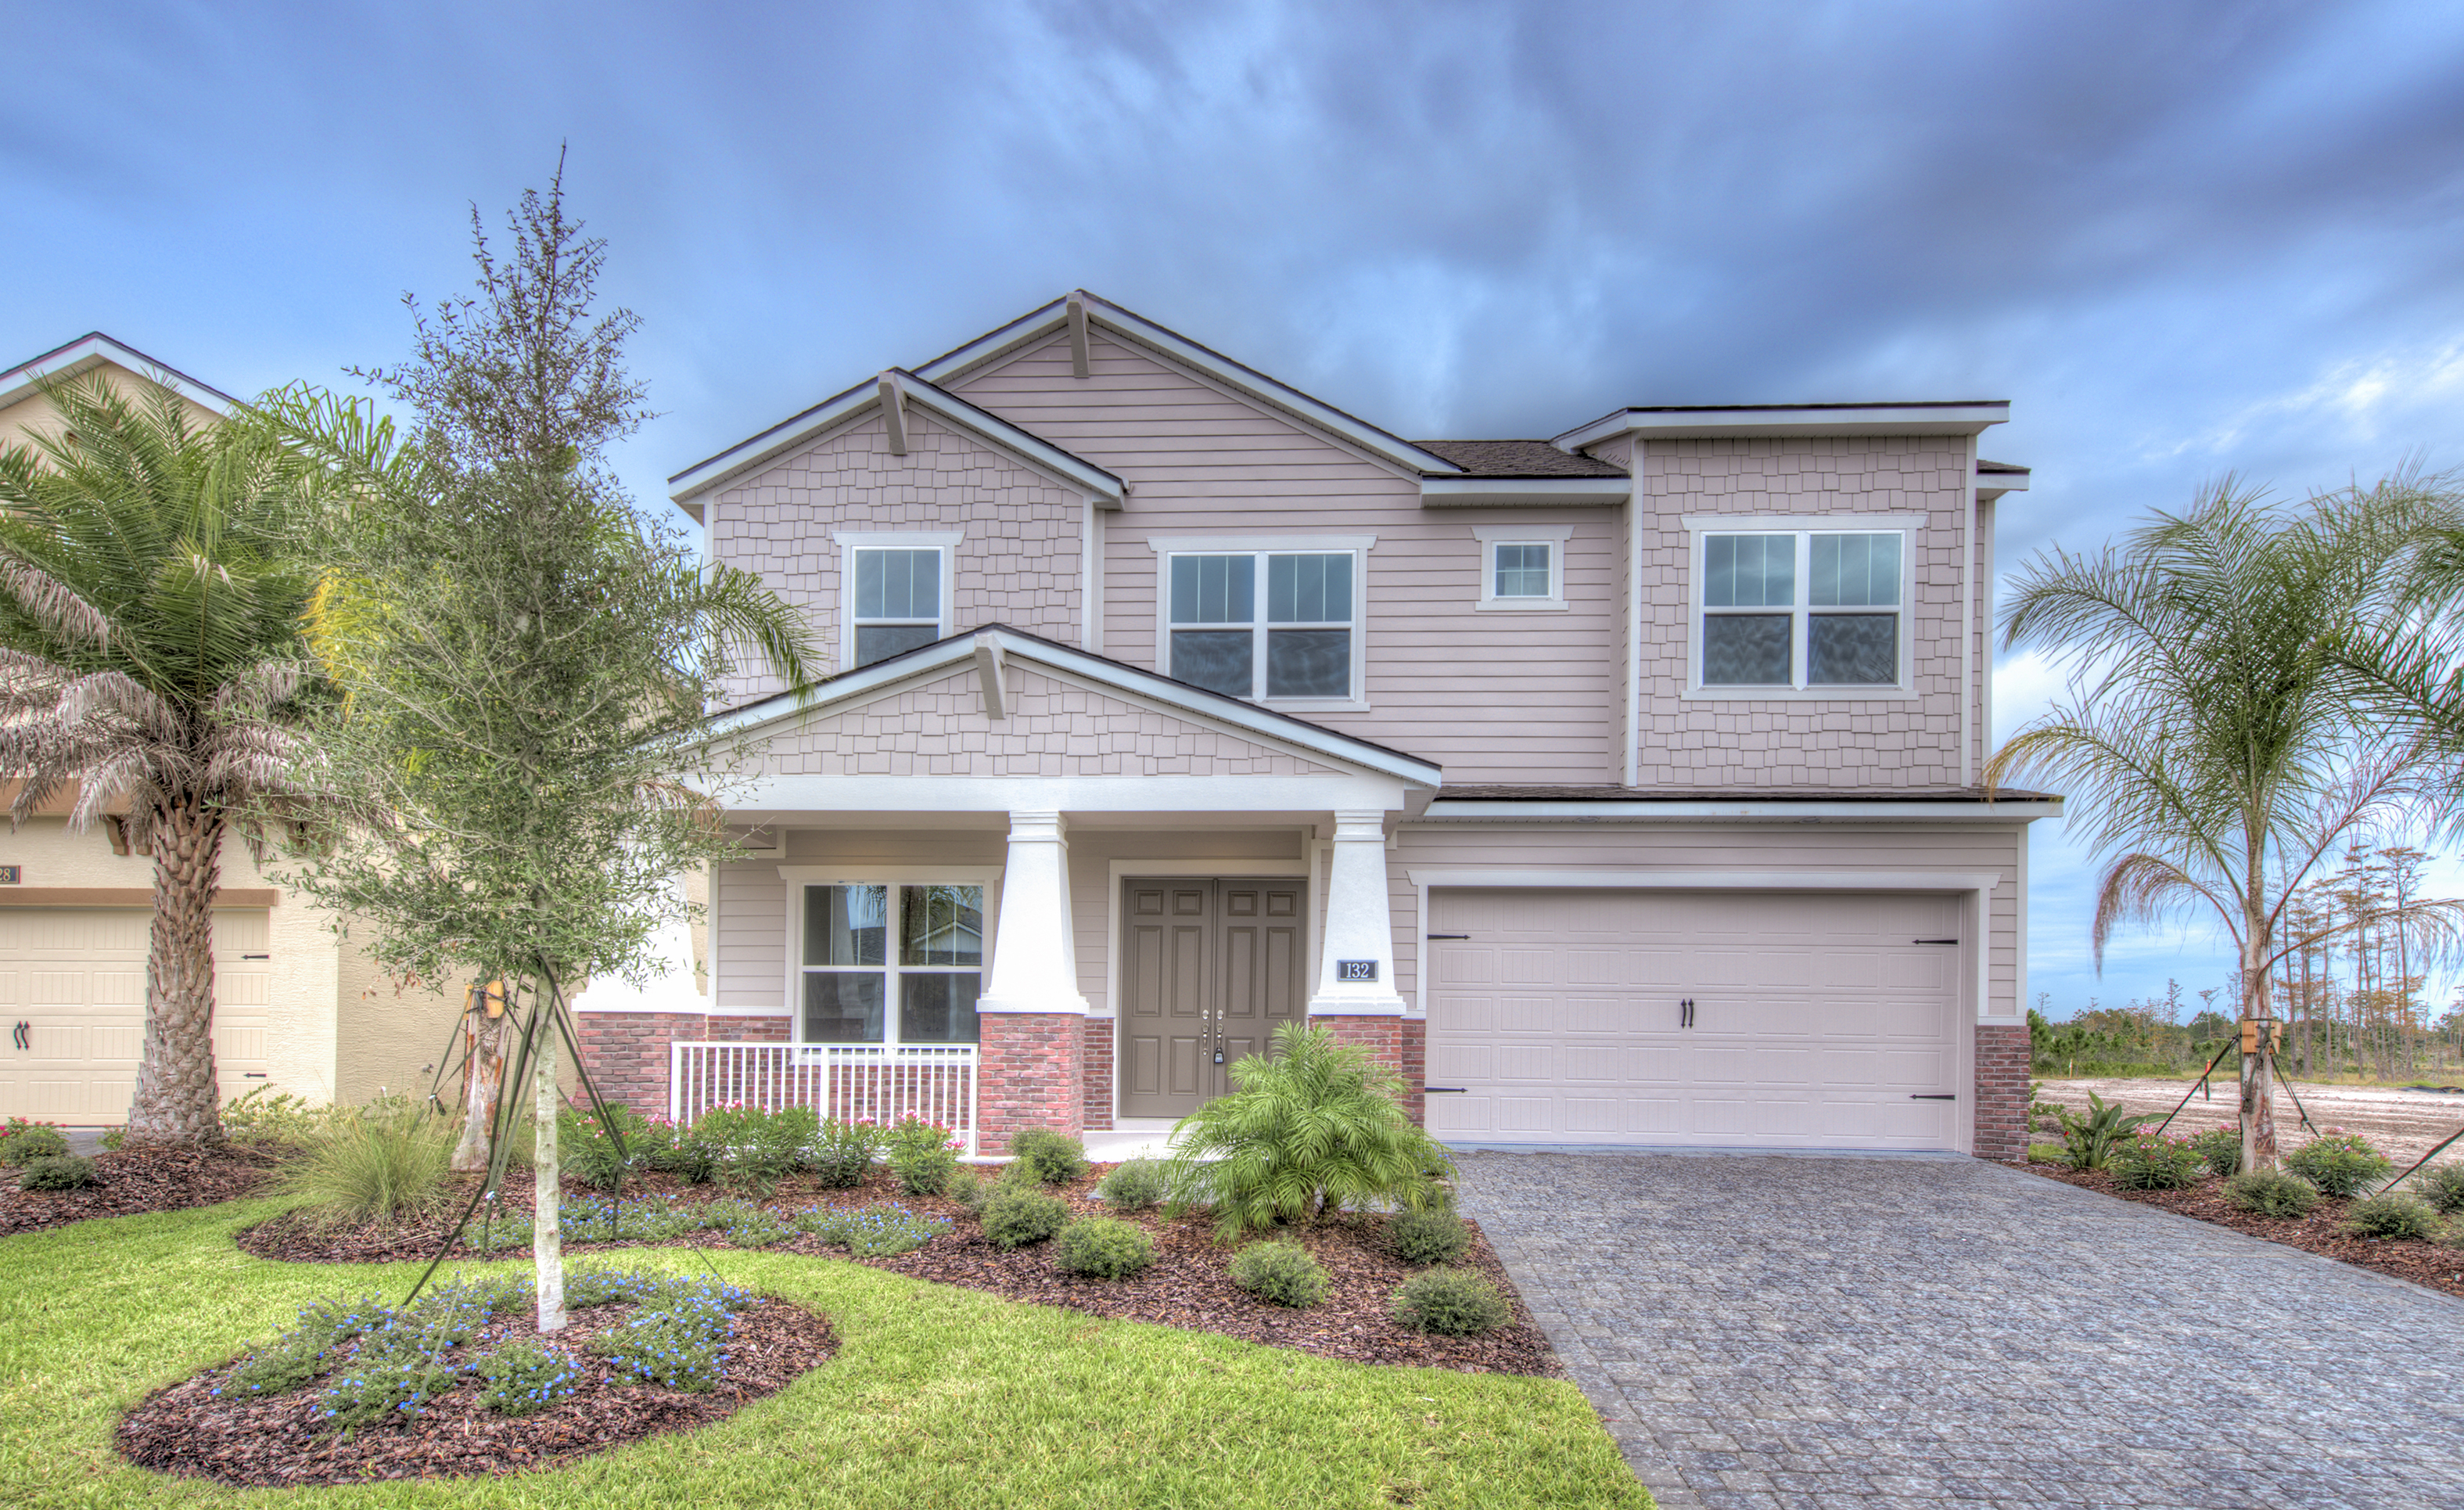 132 Azure Mist Way, Daytona Beach